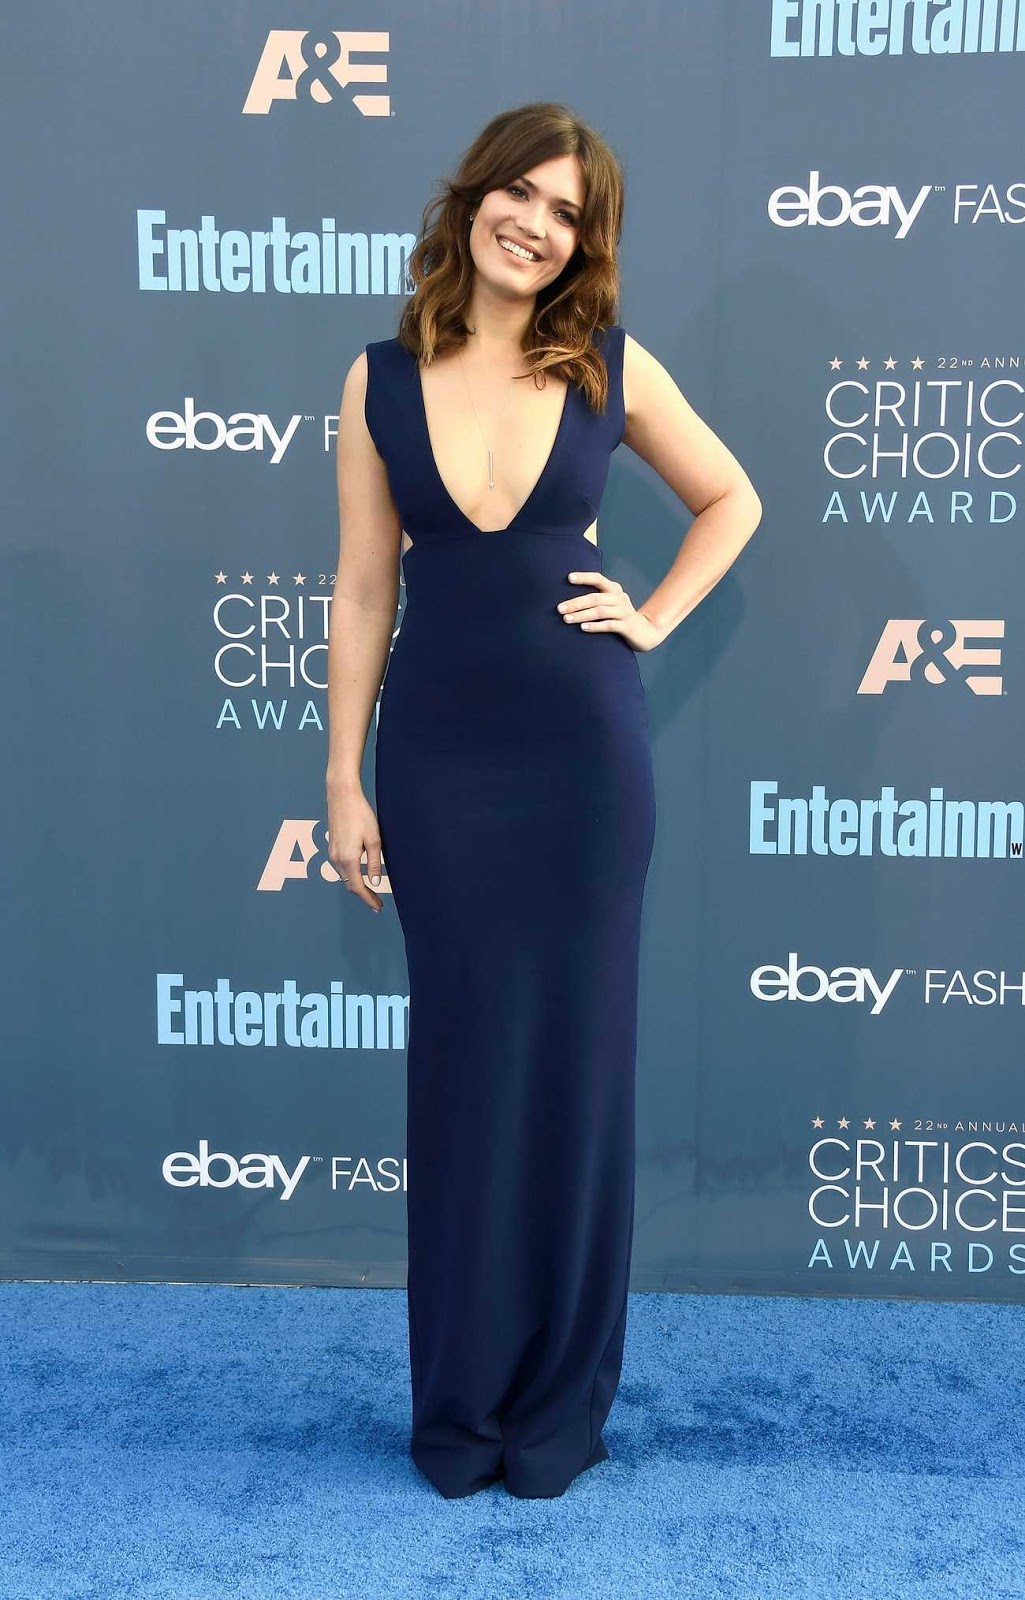 Mandy Moore wears a plunging blue dress to the 22nd Annual Critics' Choice Awards